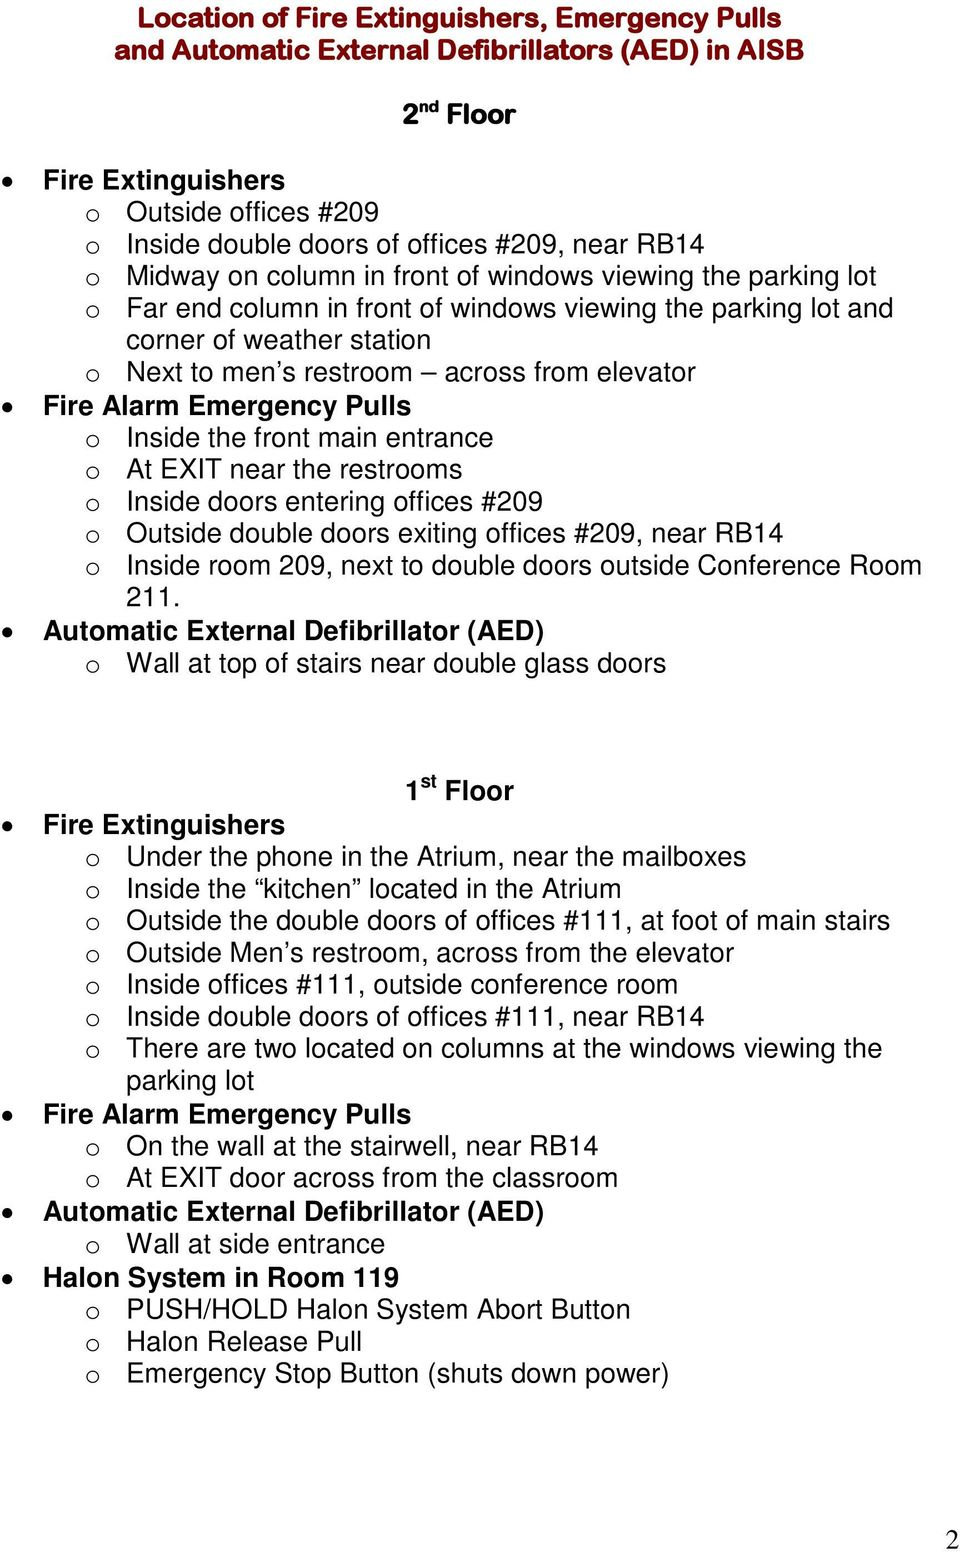 elevator Fire Alarm Emergency Pulls o Inside the front main entrance o At EXIT near the restrooms o Inside doors entering offices #209 o Outside double doors exiting offices #209, near RB14 o Inside